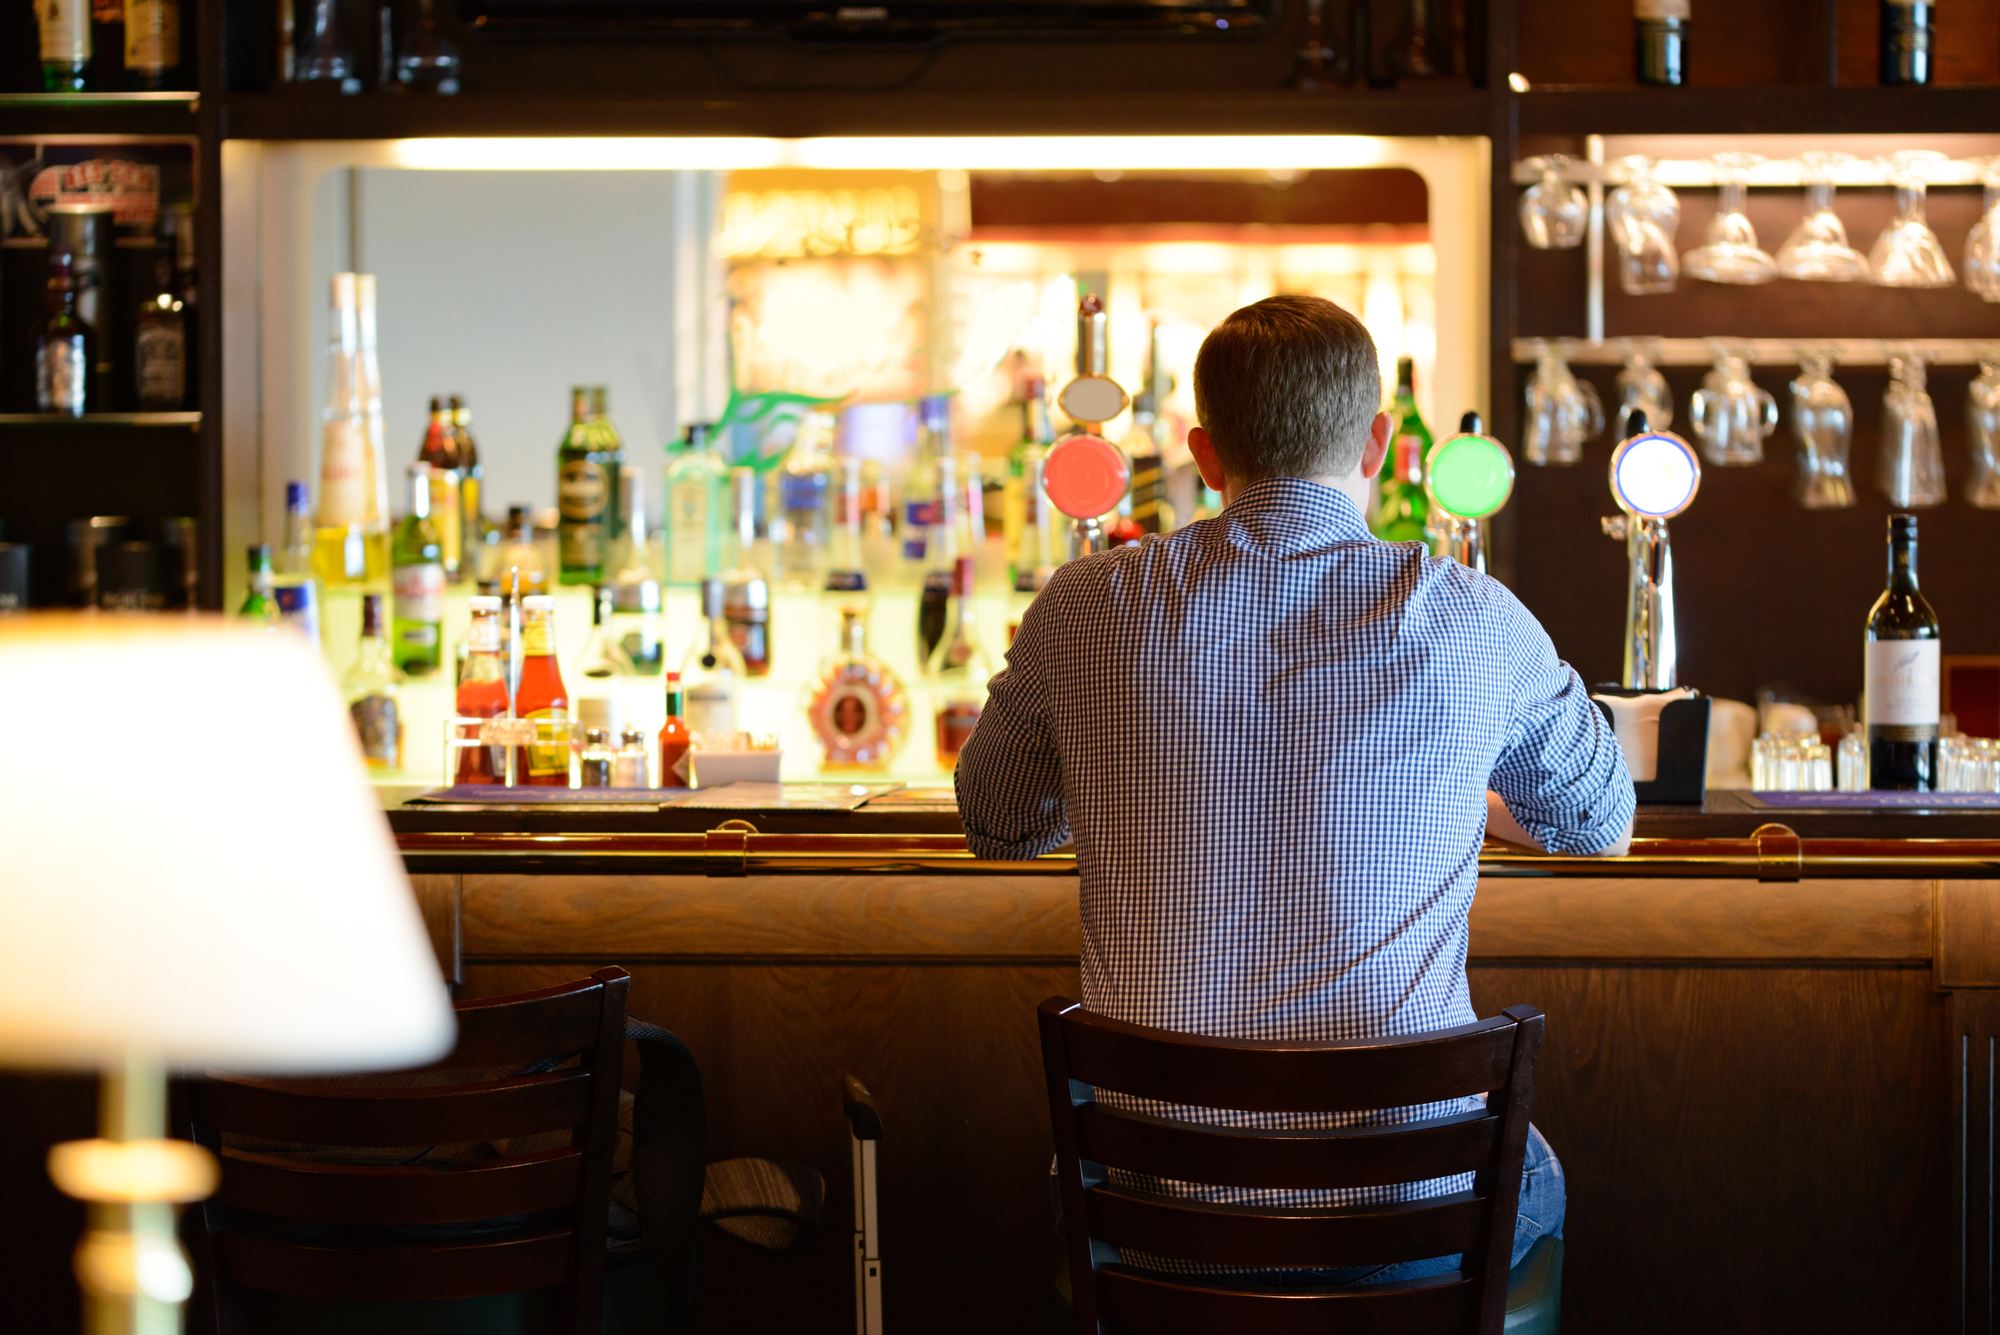 Lonely man in shirt sitting at bar desk